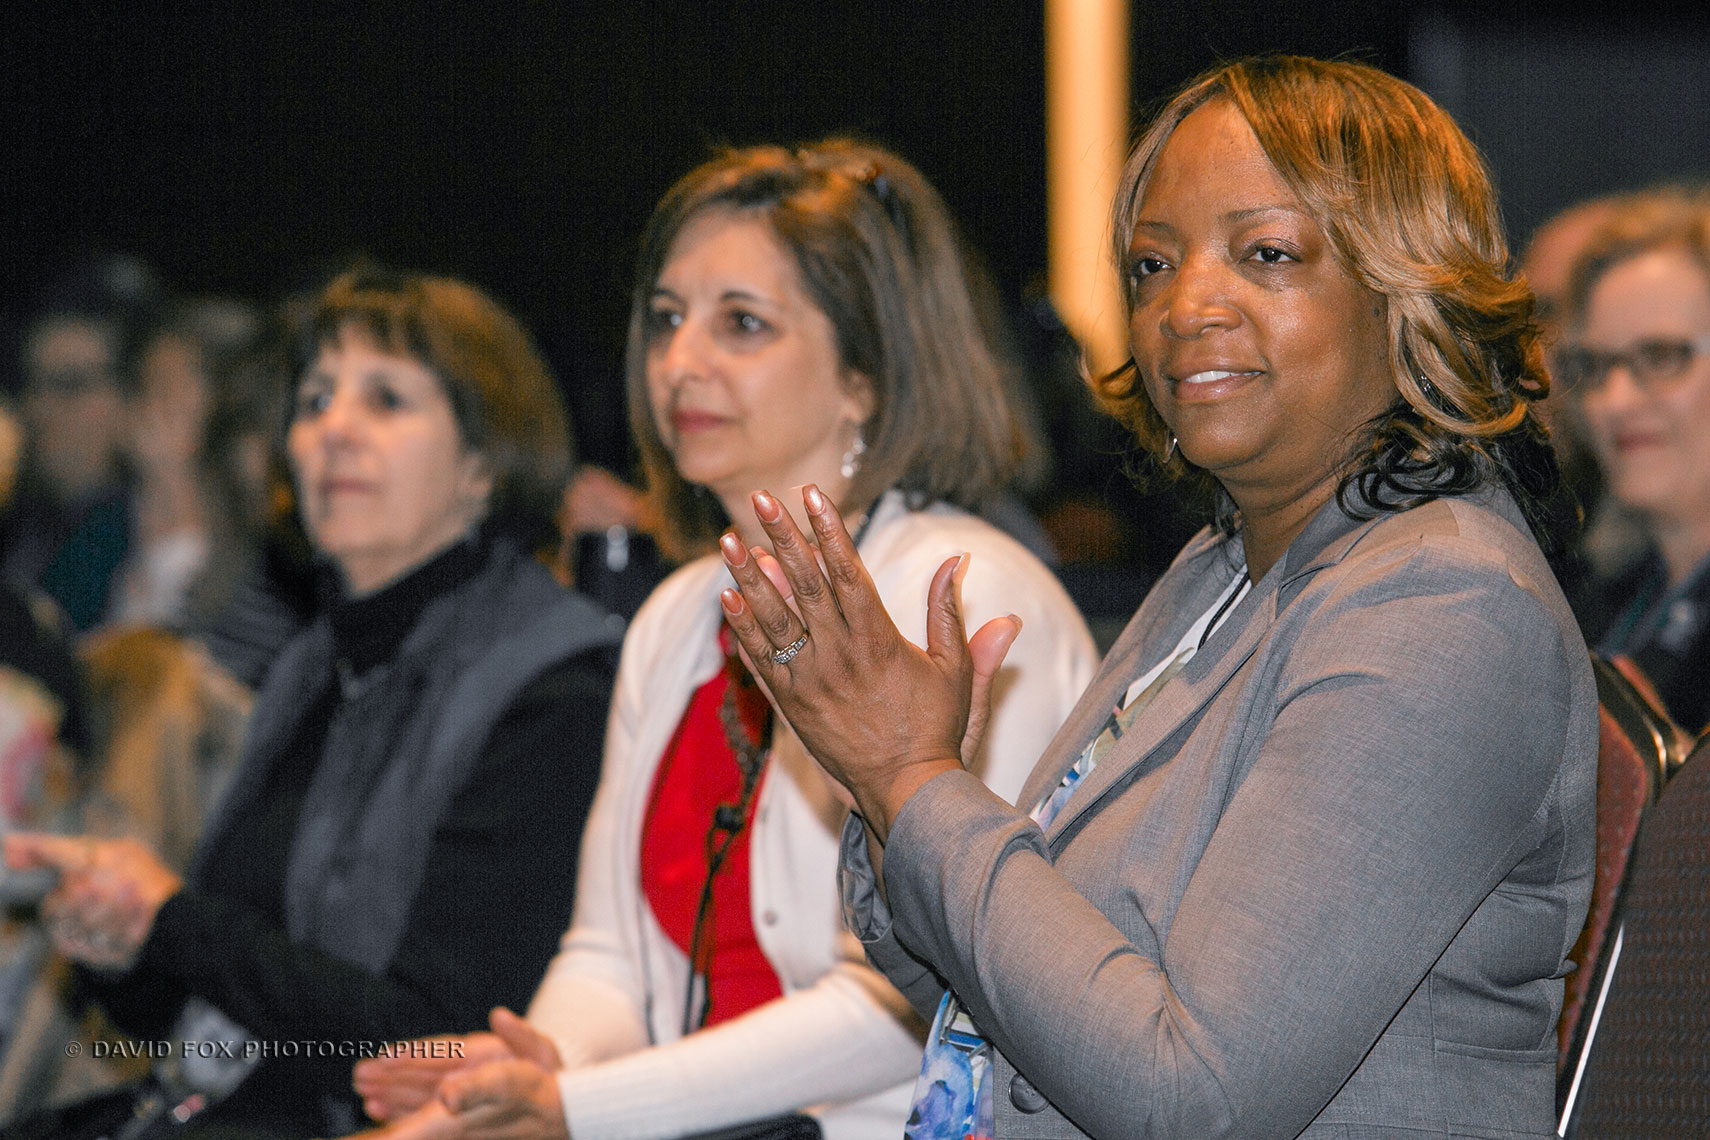 Audience Members Applaud Award Recipient at NSTA Conference